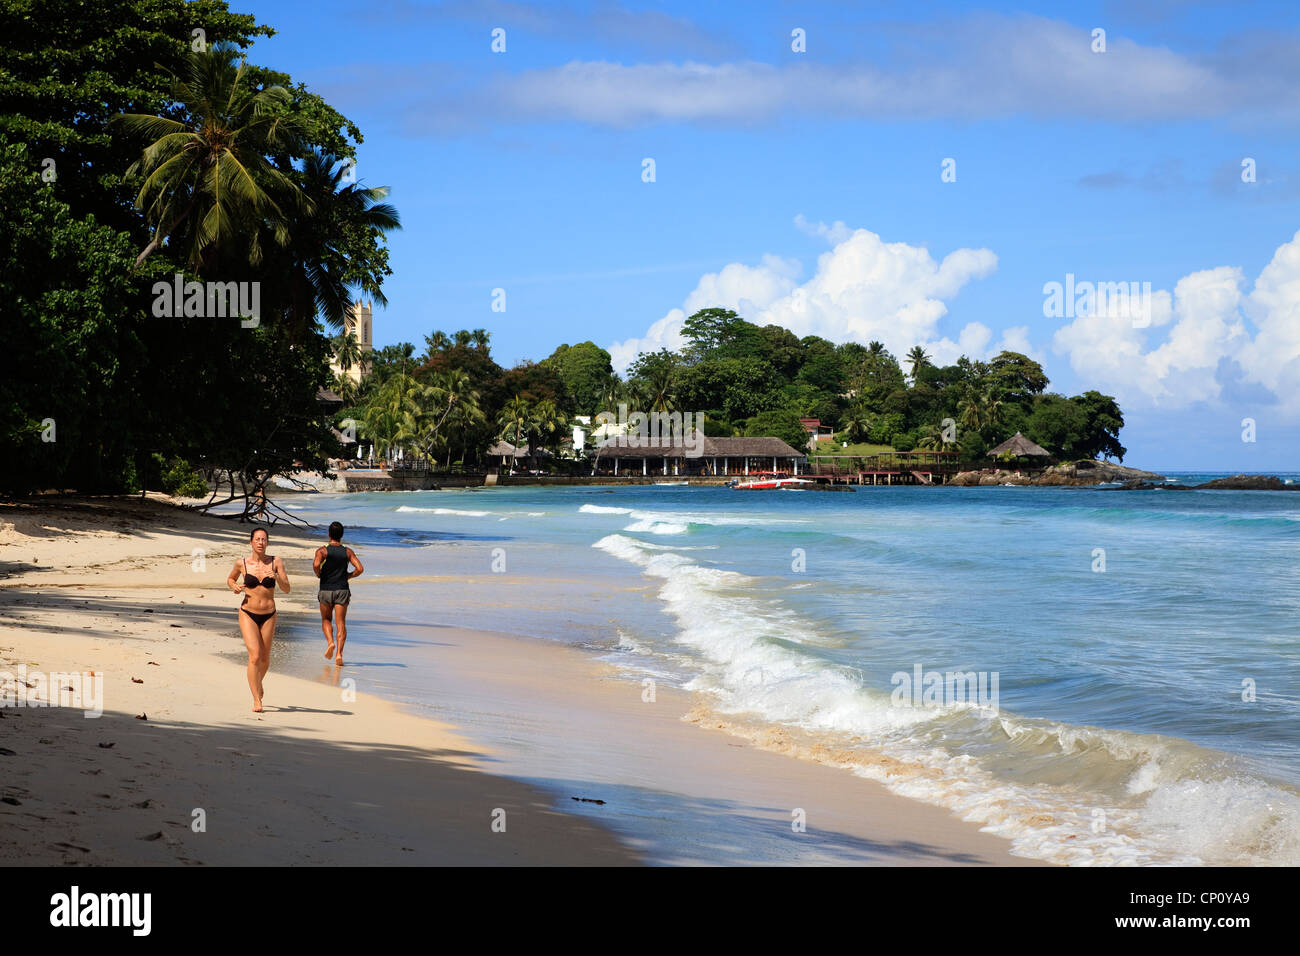 Sandy bay at Bel Ombre, Mahe Island, Seychelles - Stock Image